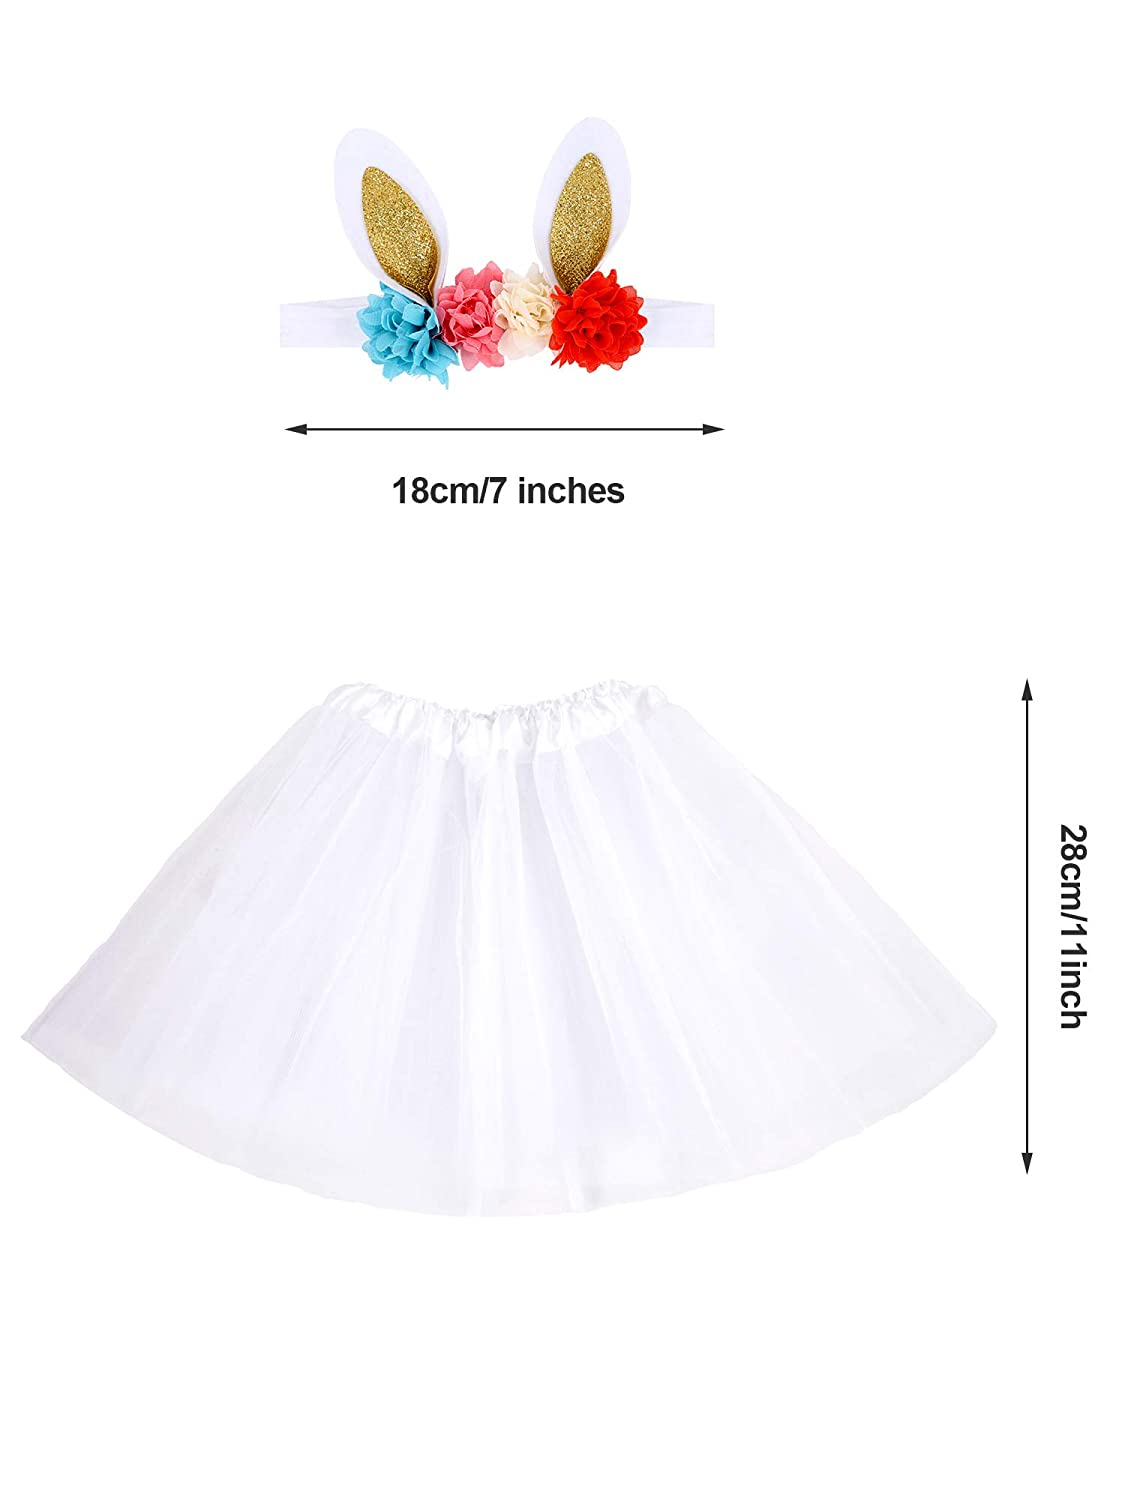 Zhanmai 3 Pieces Easter Bunny Ears Headband with Artificial Flowersand 3 Pieces Tutu Dress for Easter Children Costume Accessory